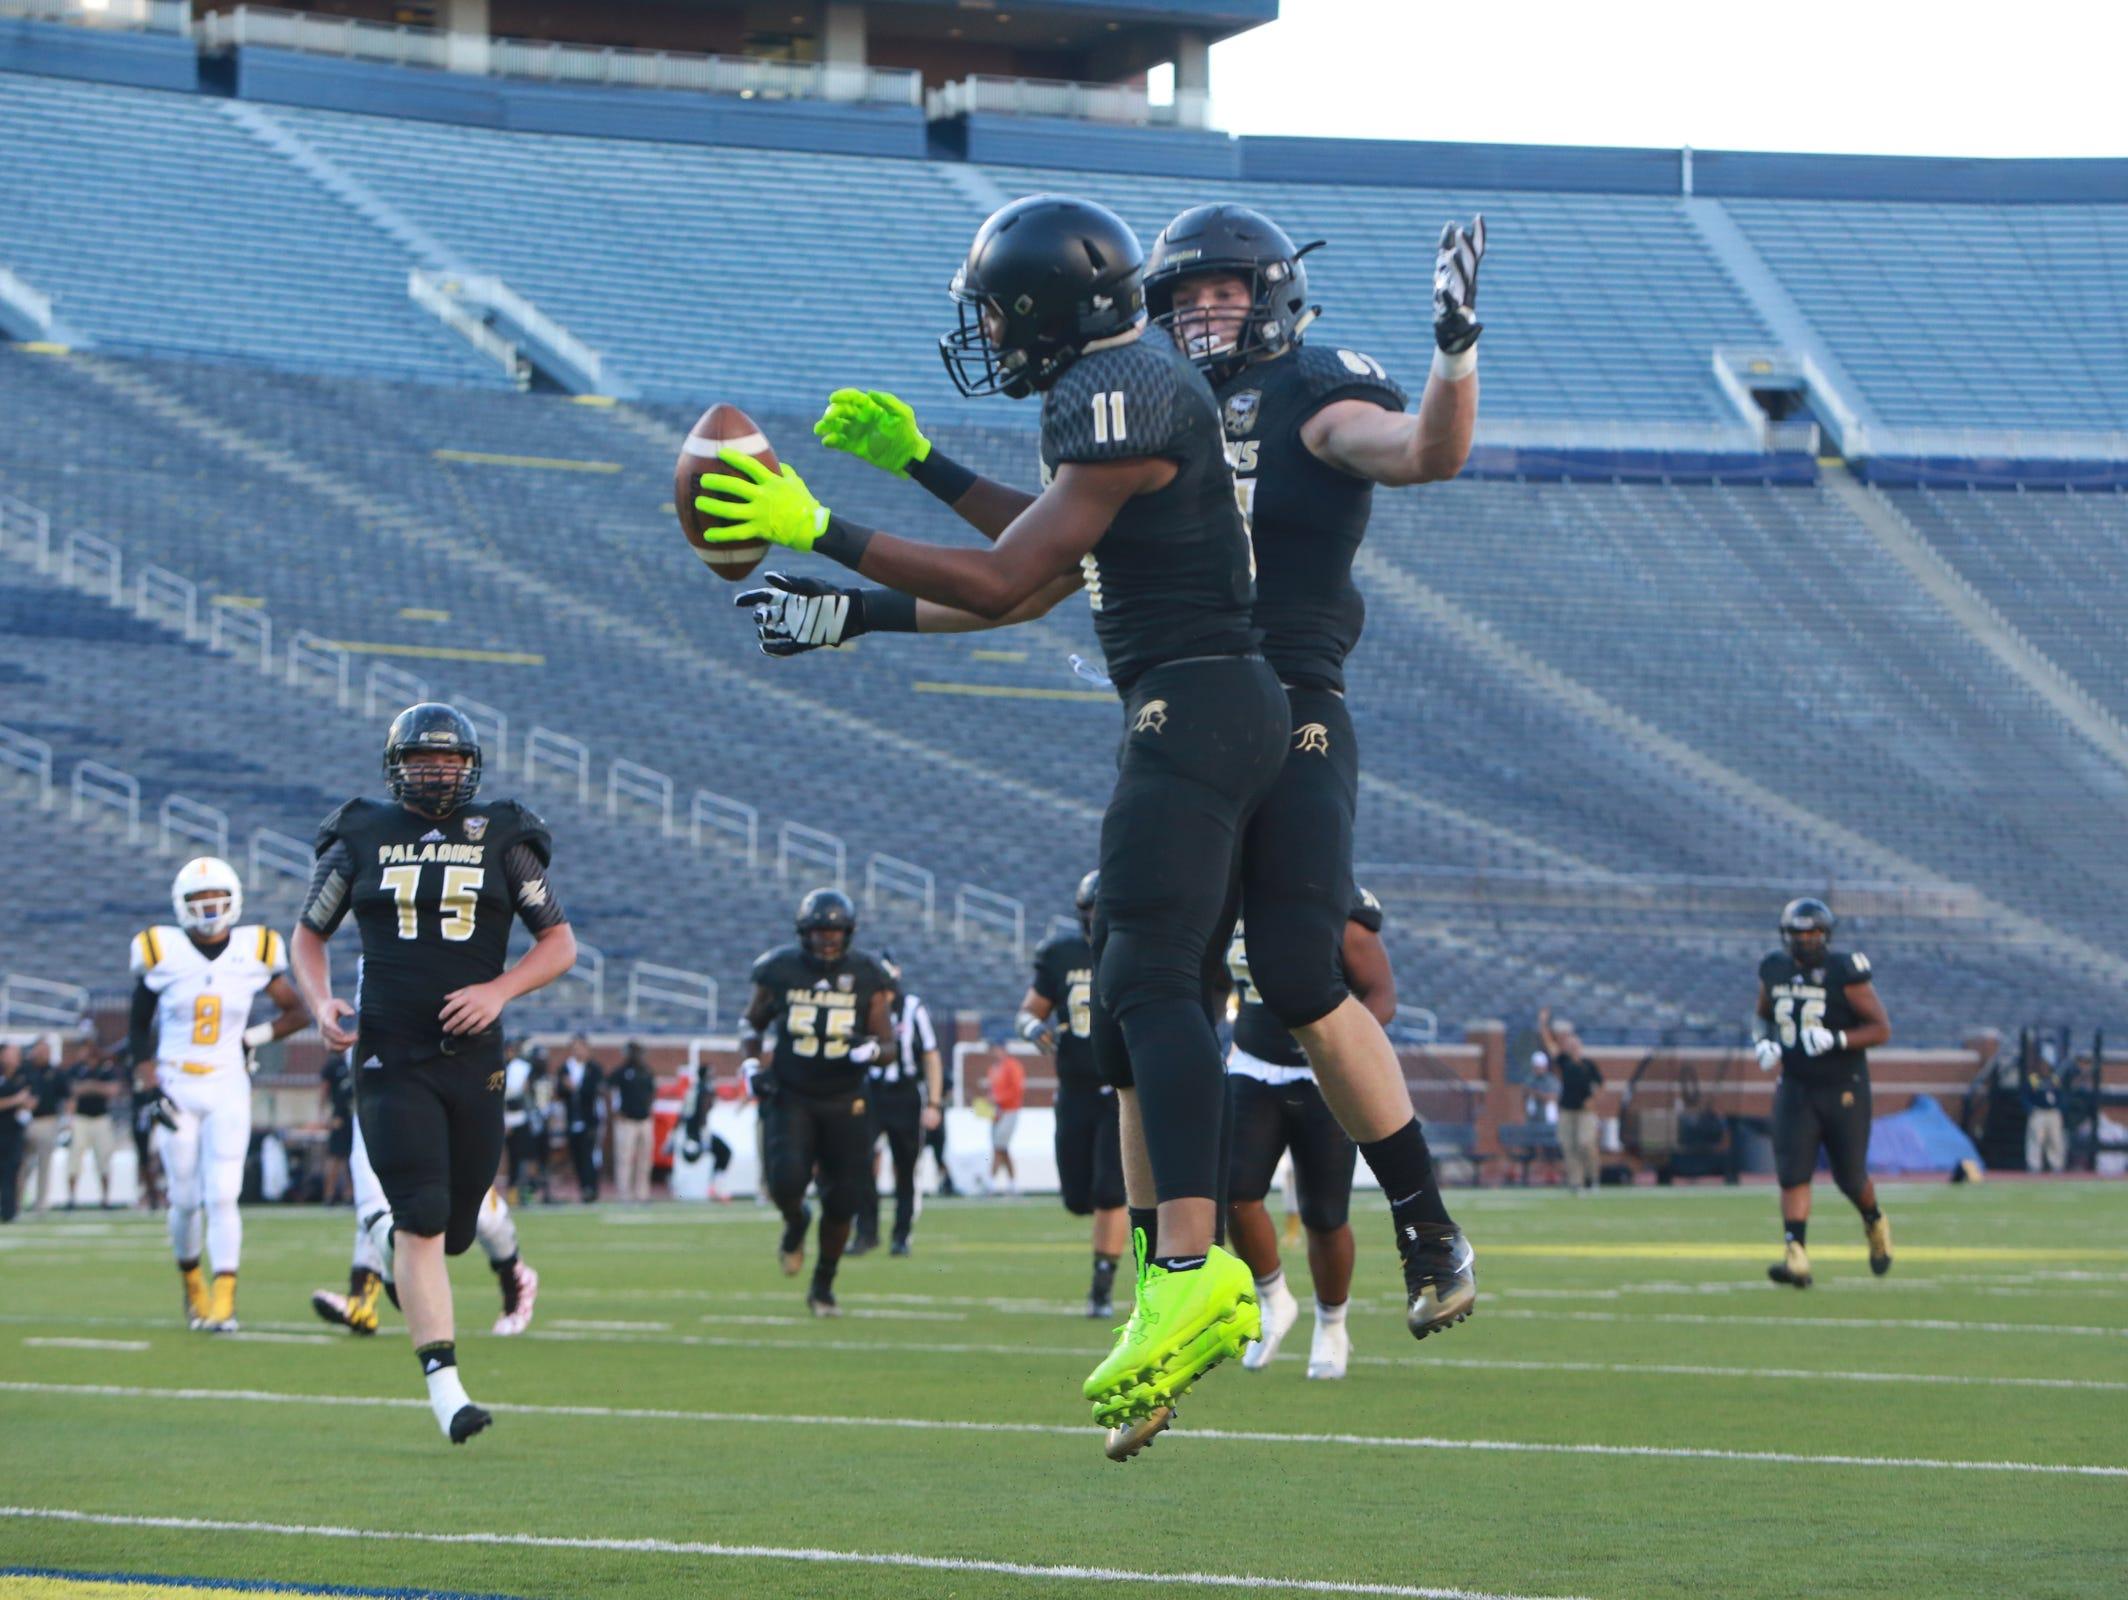 Paramus Catholic WR Javon Turner (11) celebrates in the end zone after a touchdown reception against St. Frances Academy during Paramus' 38-20 win Friday at Michigan Stadium.